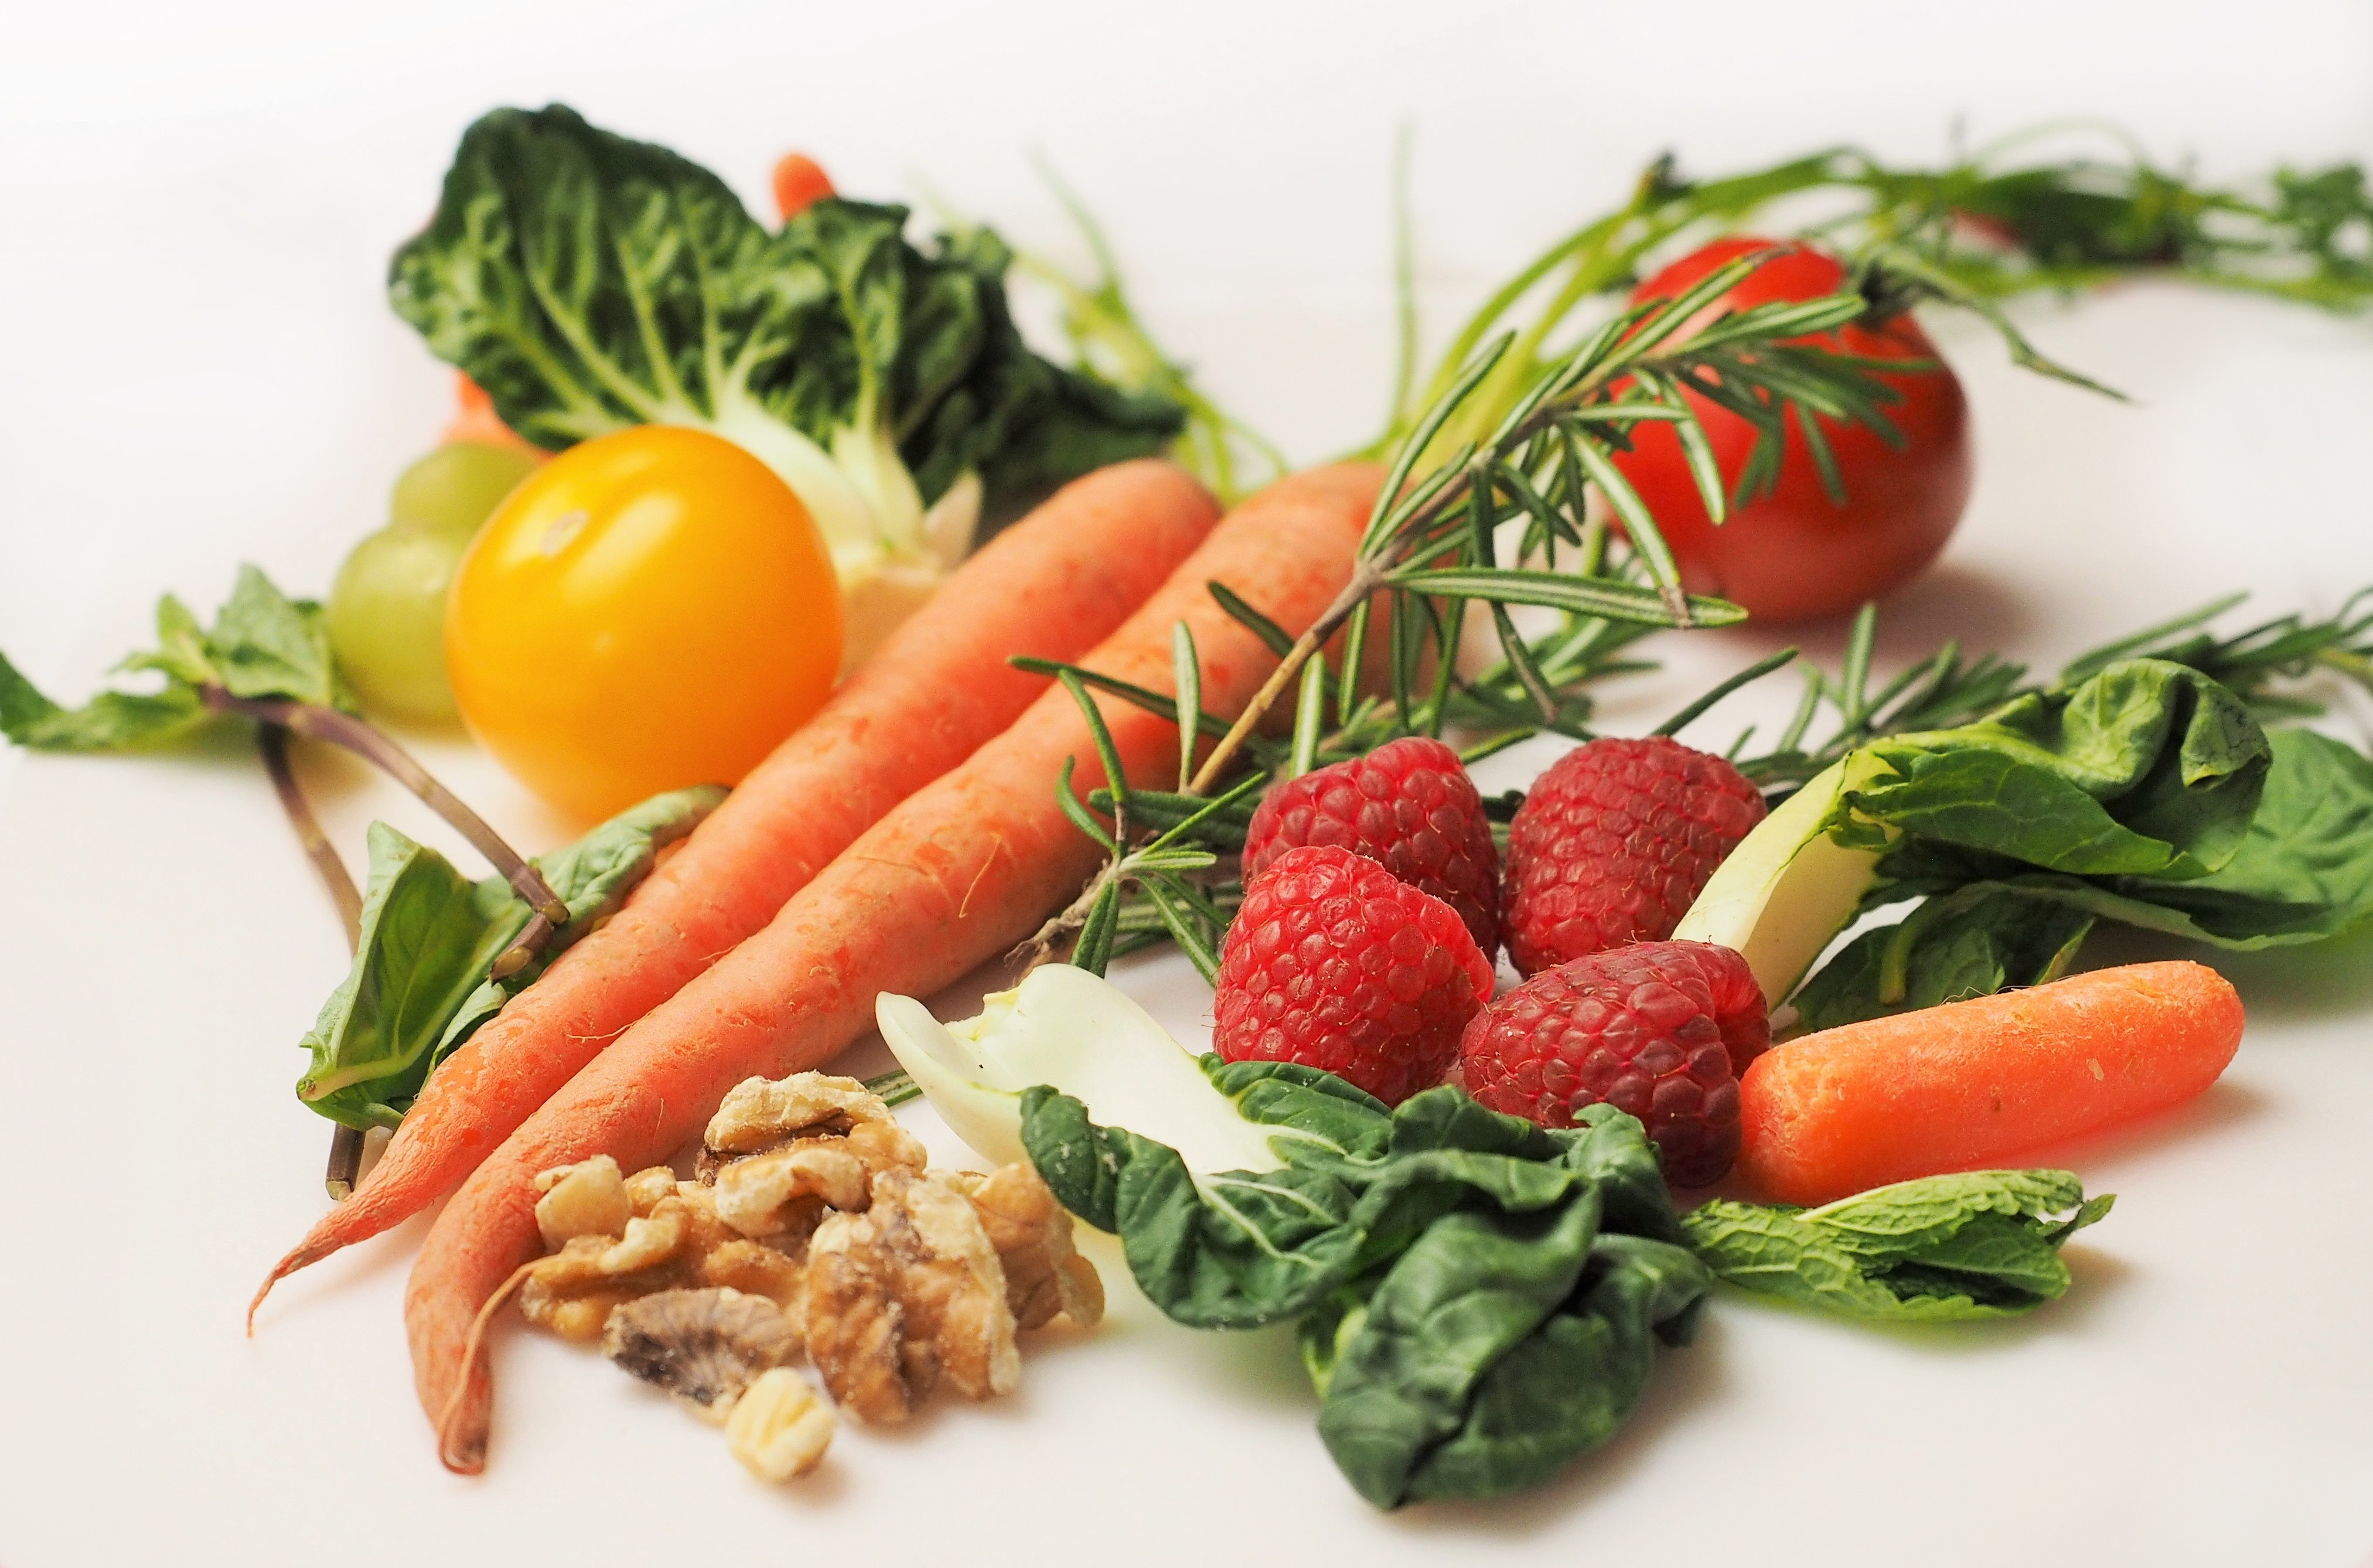 Carrots tomatoes vegetables and other fruits photo